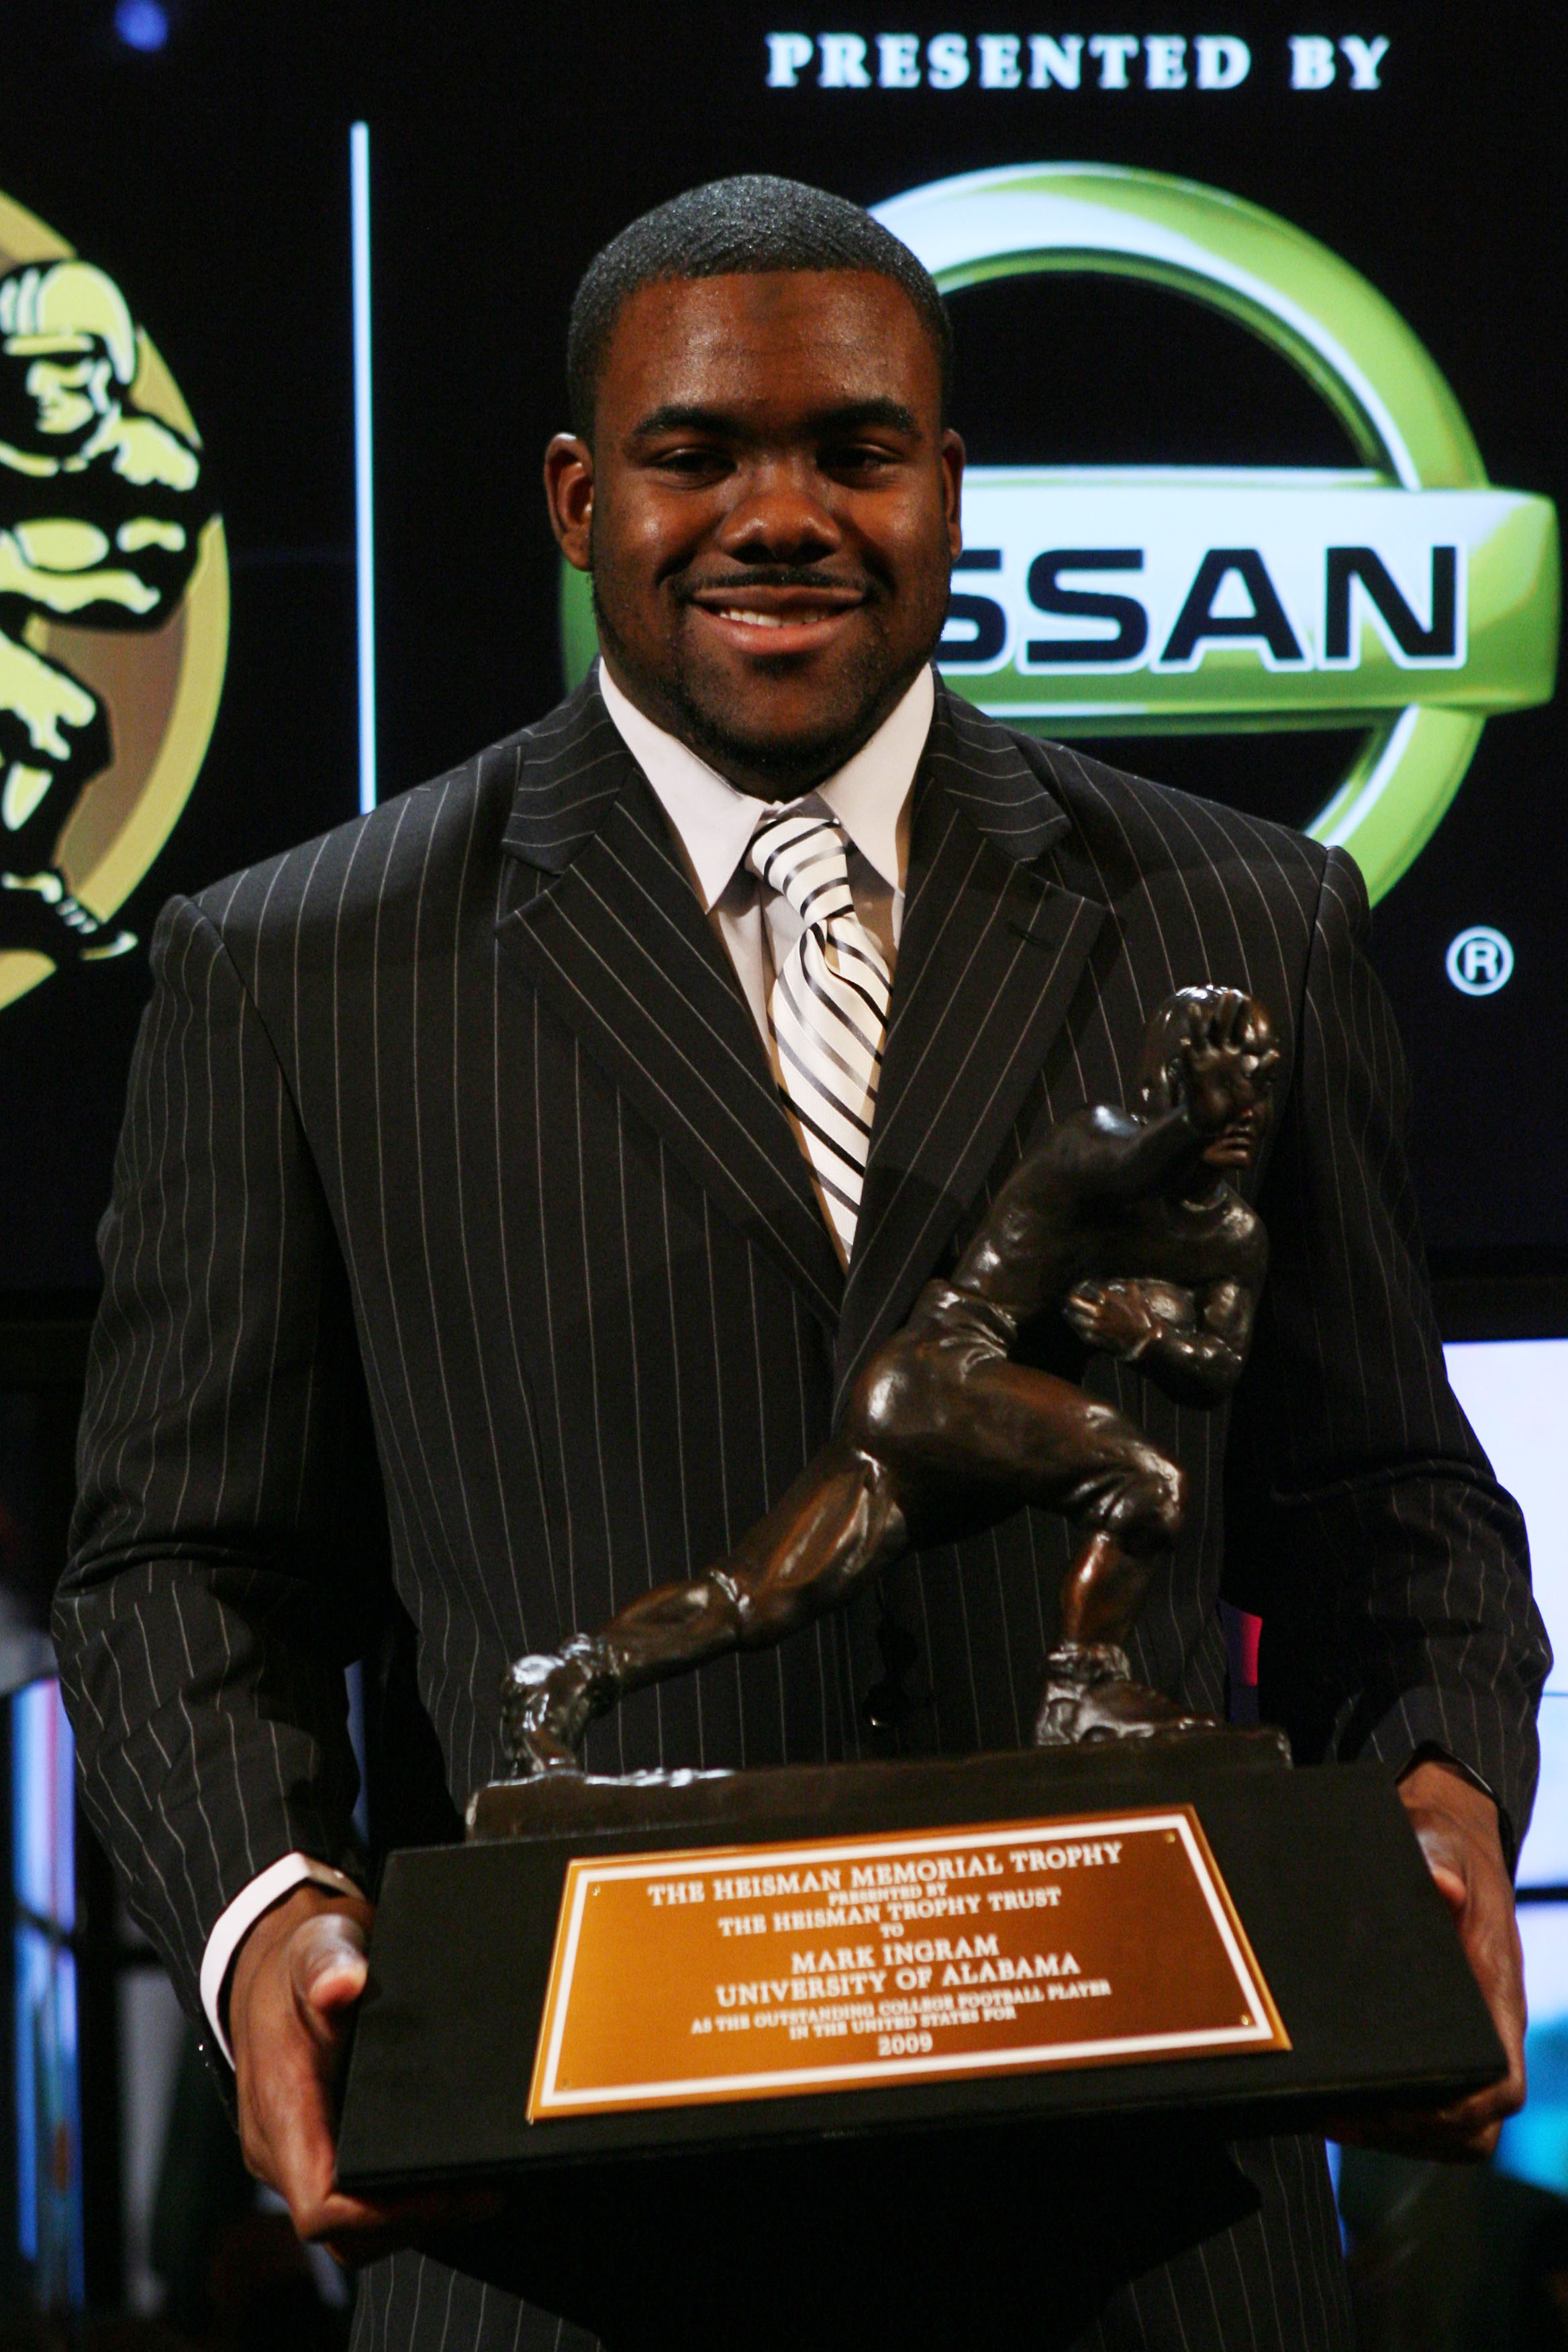 NEW YORK - DECEMBER 12:  Running back Mark Ingram #22 of the Alabama Crimson Tide poses with the Heisman Trophy during a press conference after being named the 75th Heisman Trophy winner at the Marriott Marquis on December 12, 2009 in New York City.  (Pho